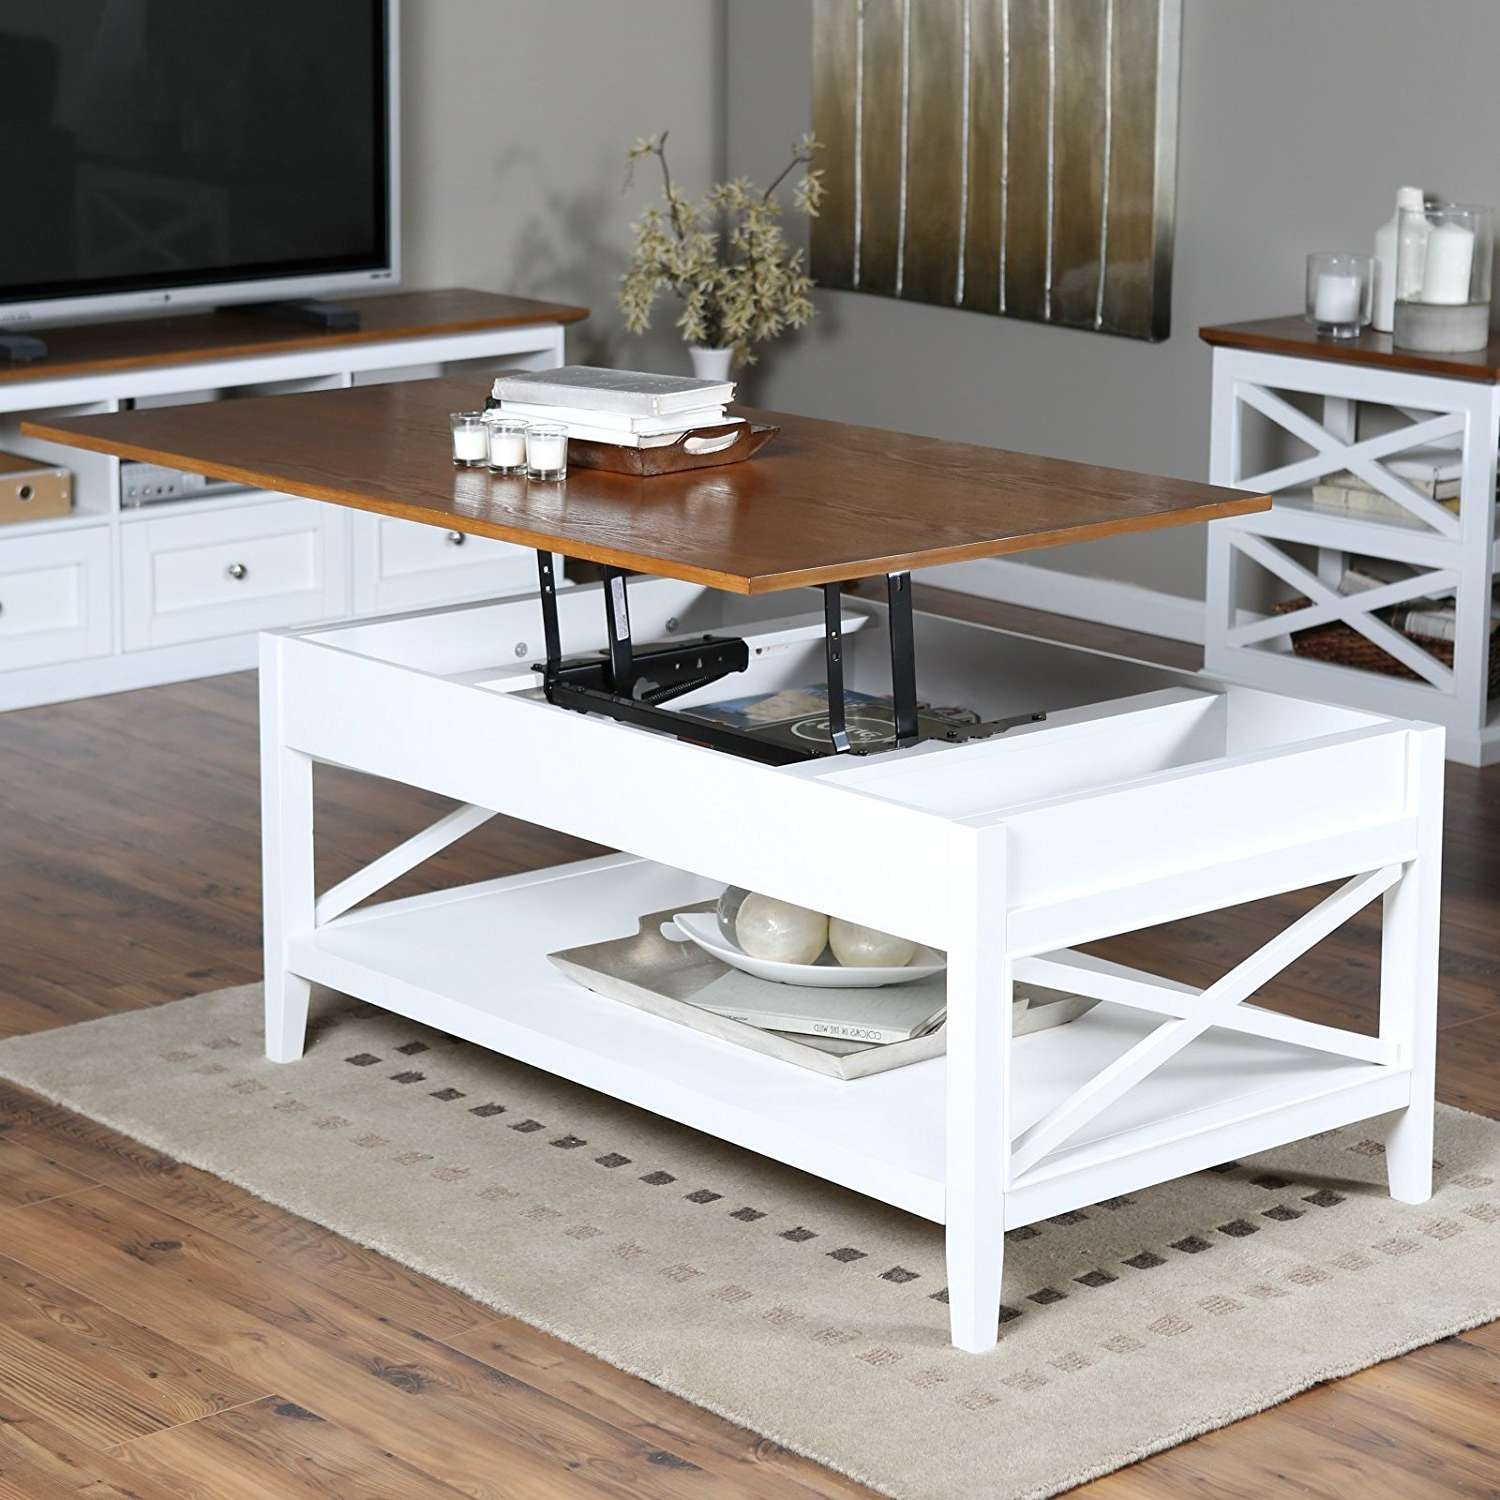 Coffee Tables : White Coffee Table Lift Top Round Glass Square For Fashionable Coffee Tables With Raisable Top (View 12 of 20)